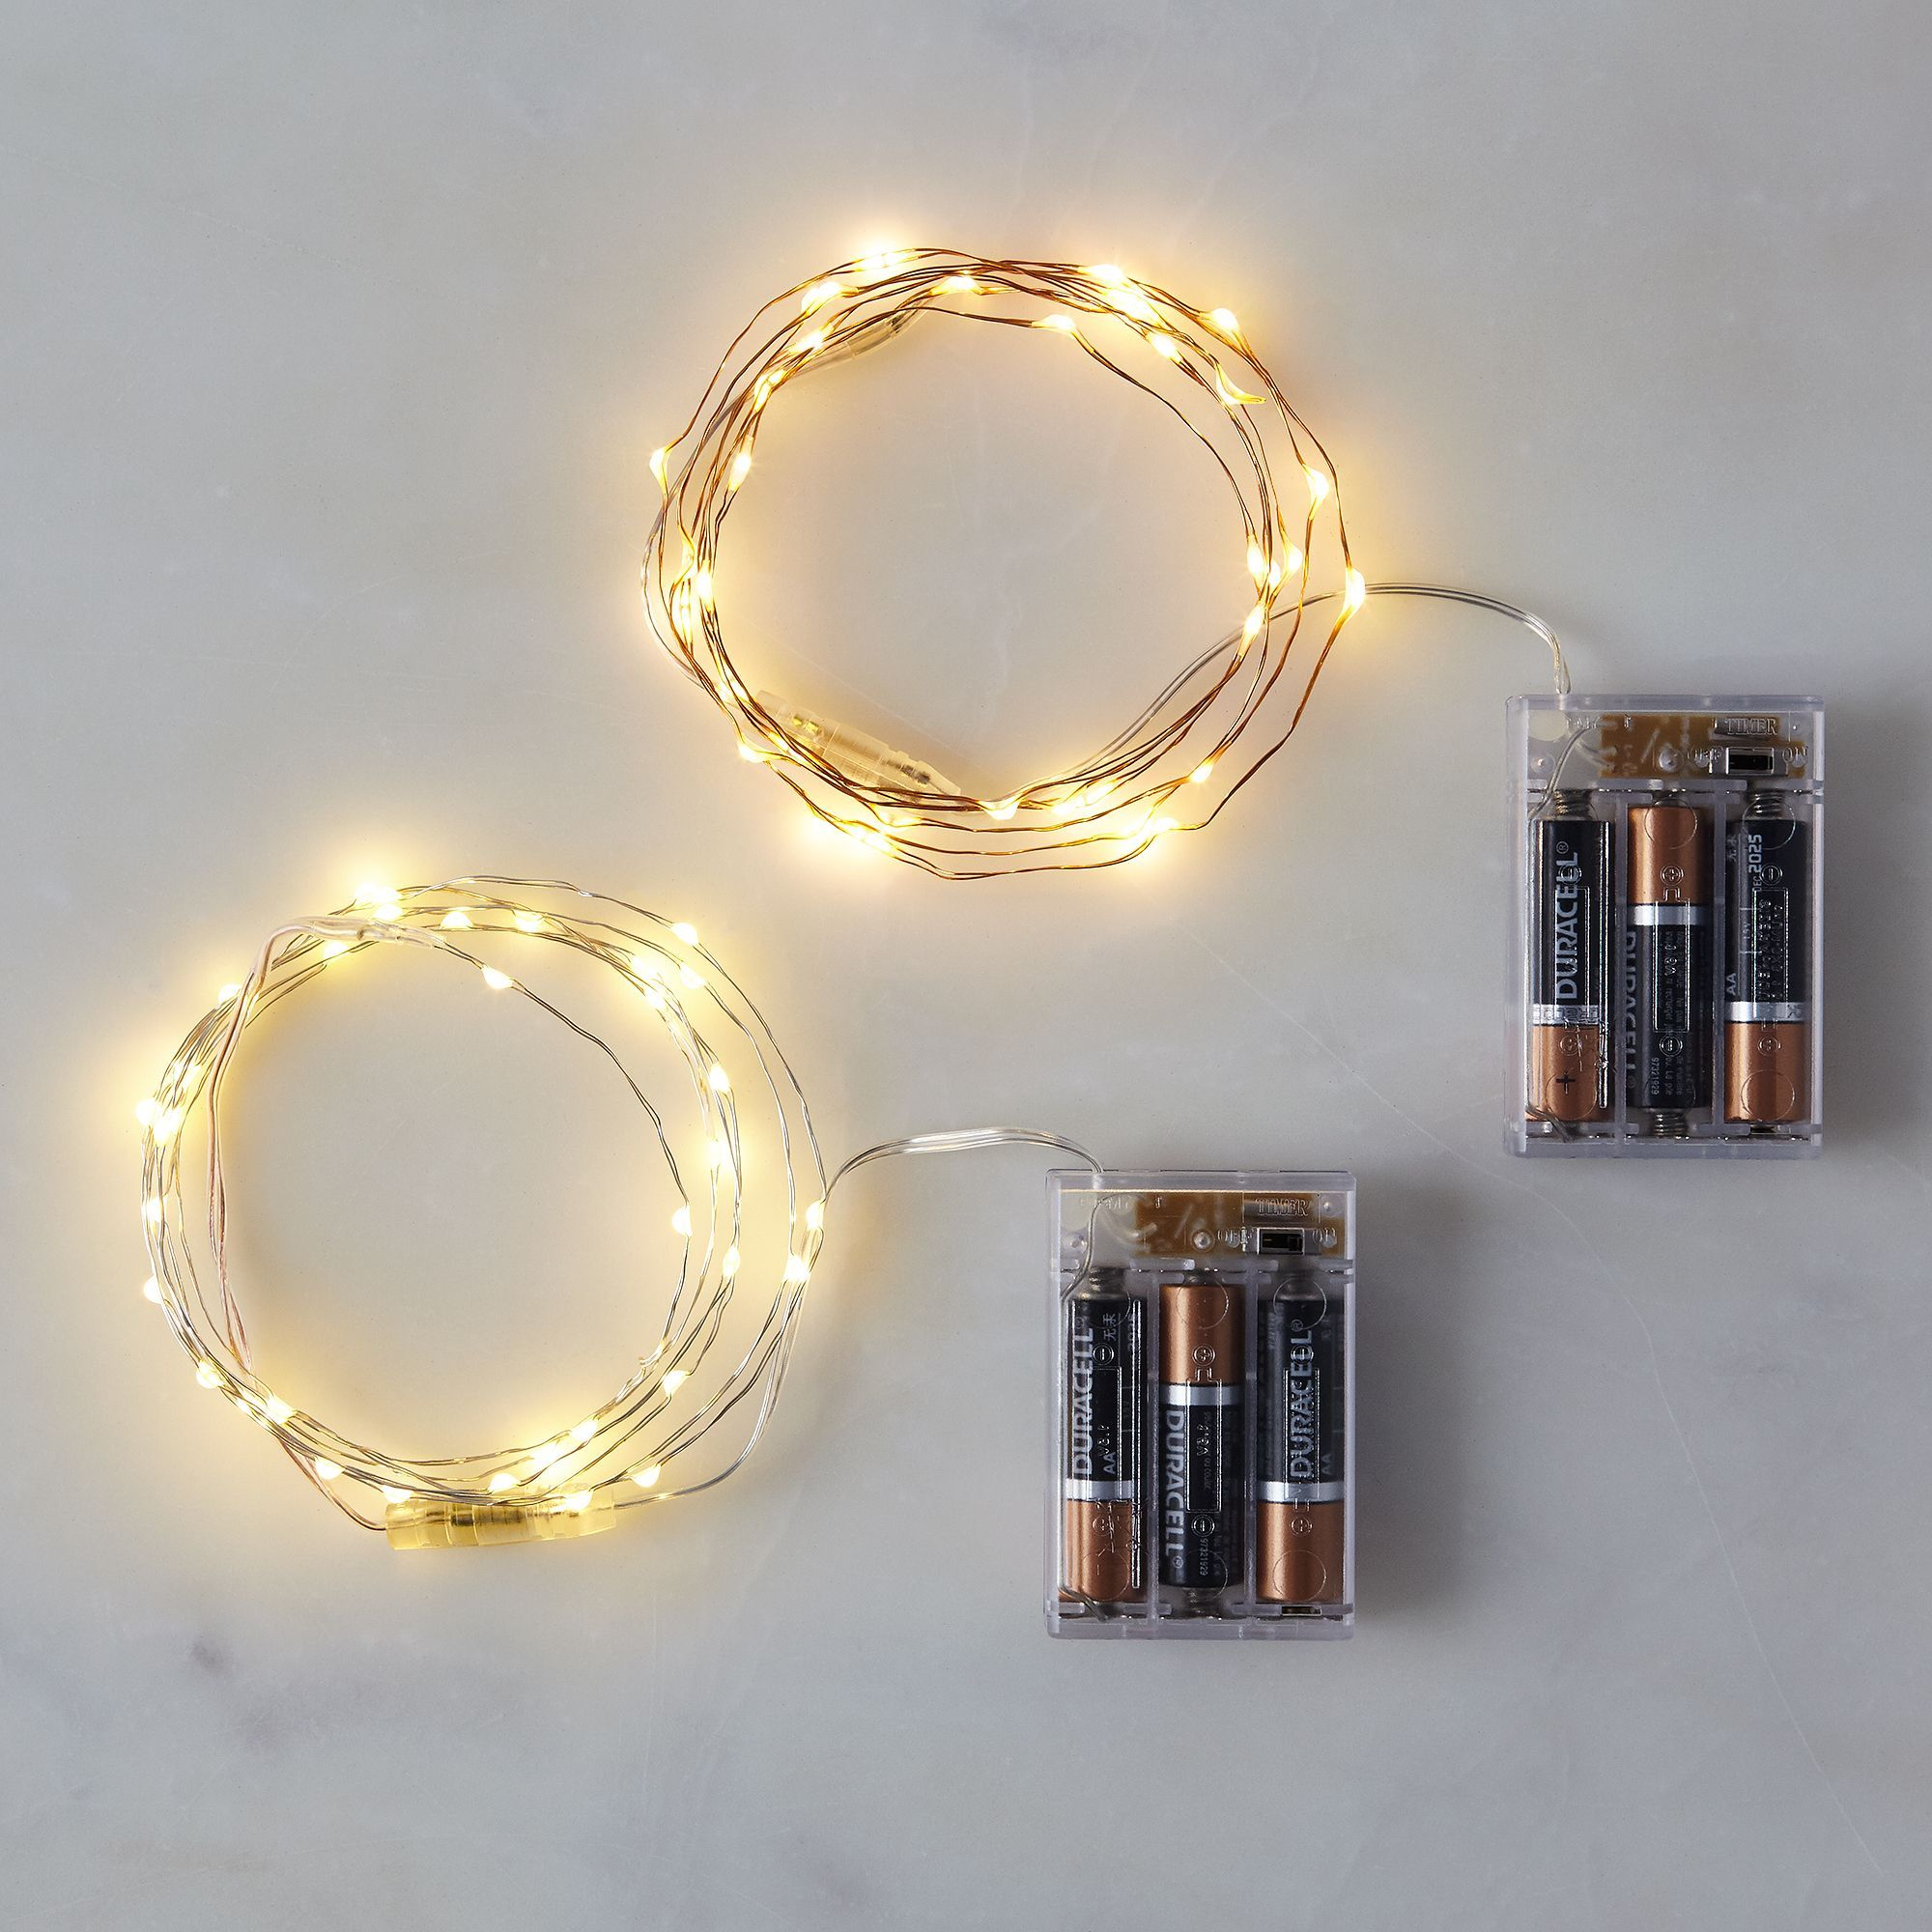 Dew Drop Wired Led Lights Set Of 2 On Food52 Decoracion Hogar Decoracion De Unas Manualidades